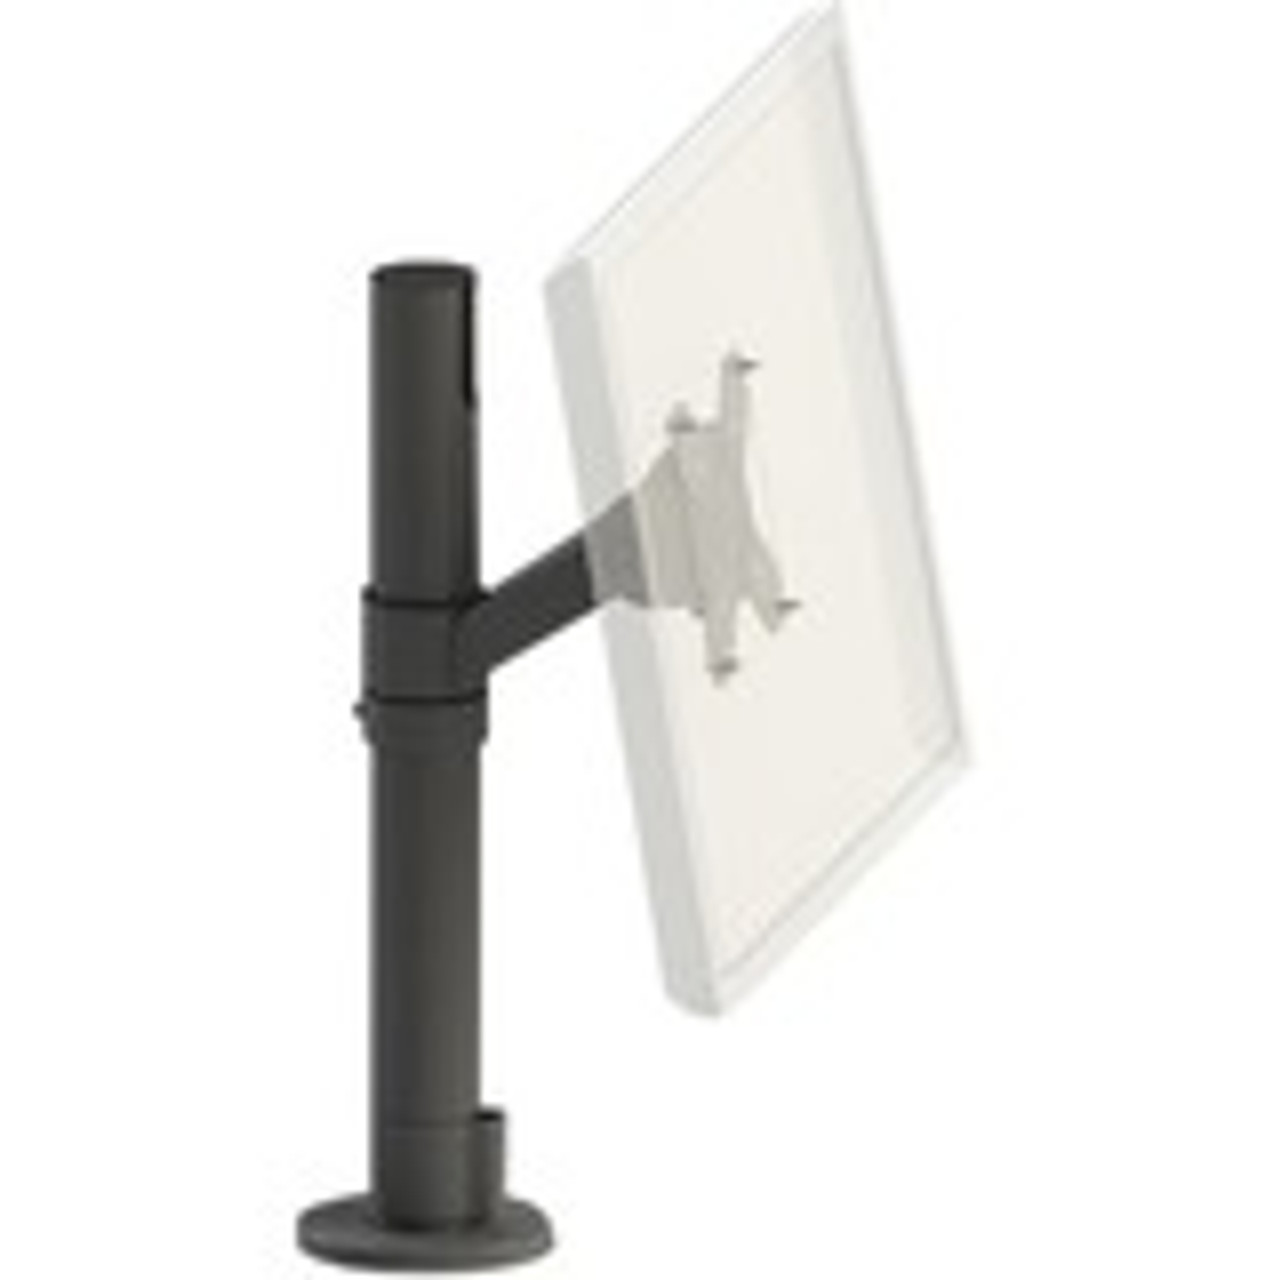 SpacePole Angled 75/100 VESA Display Mount on 400MM (15.75 Inch) Steel Pole